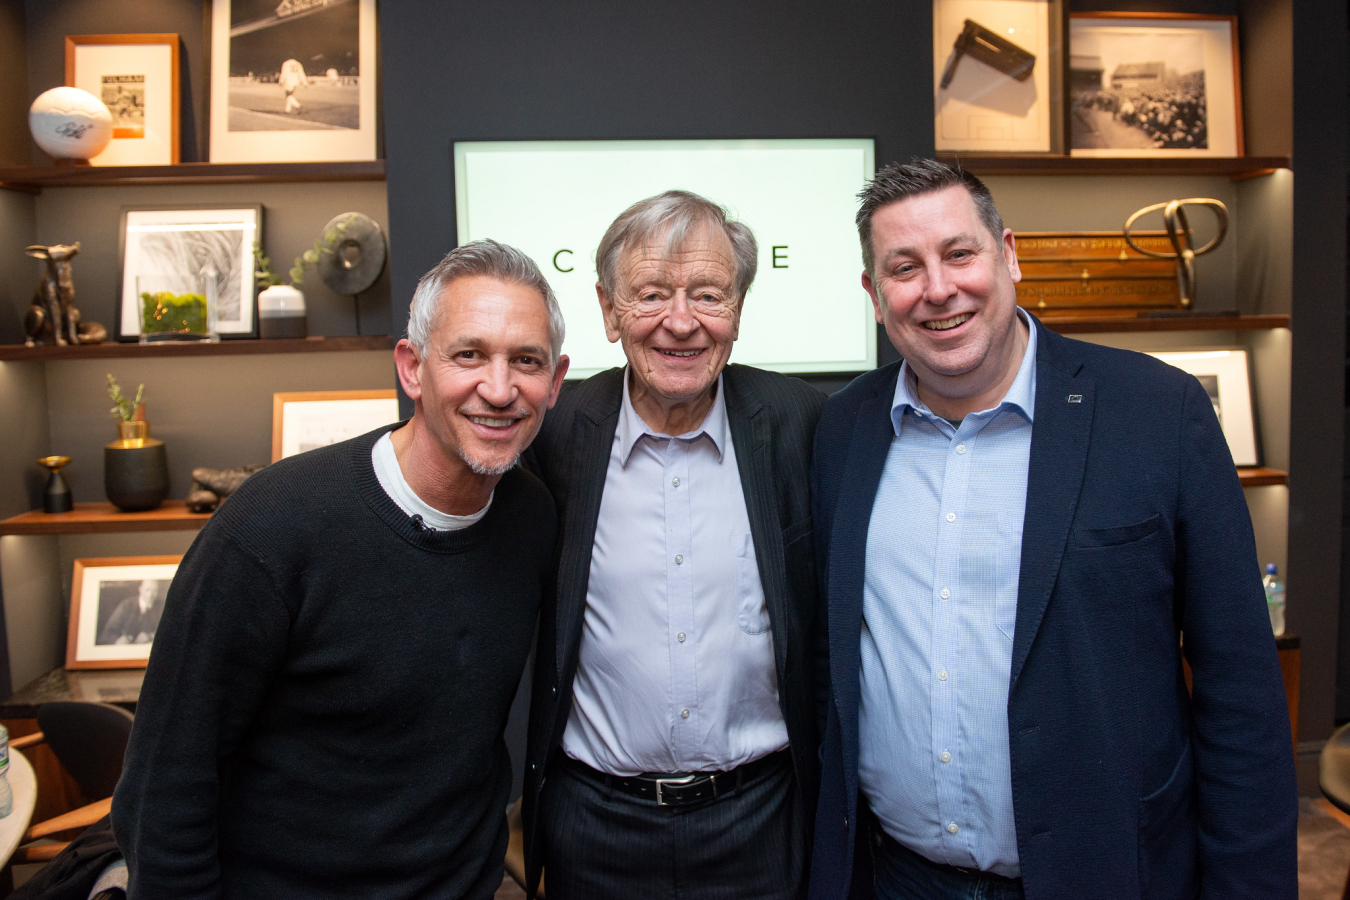 Lord Dubs (centre) with Gary Lineker - Fulham Football Club where refugee children take part in football training sessions March 5, 2020